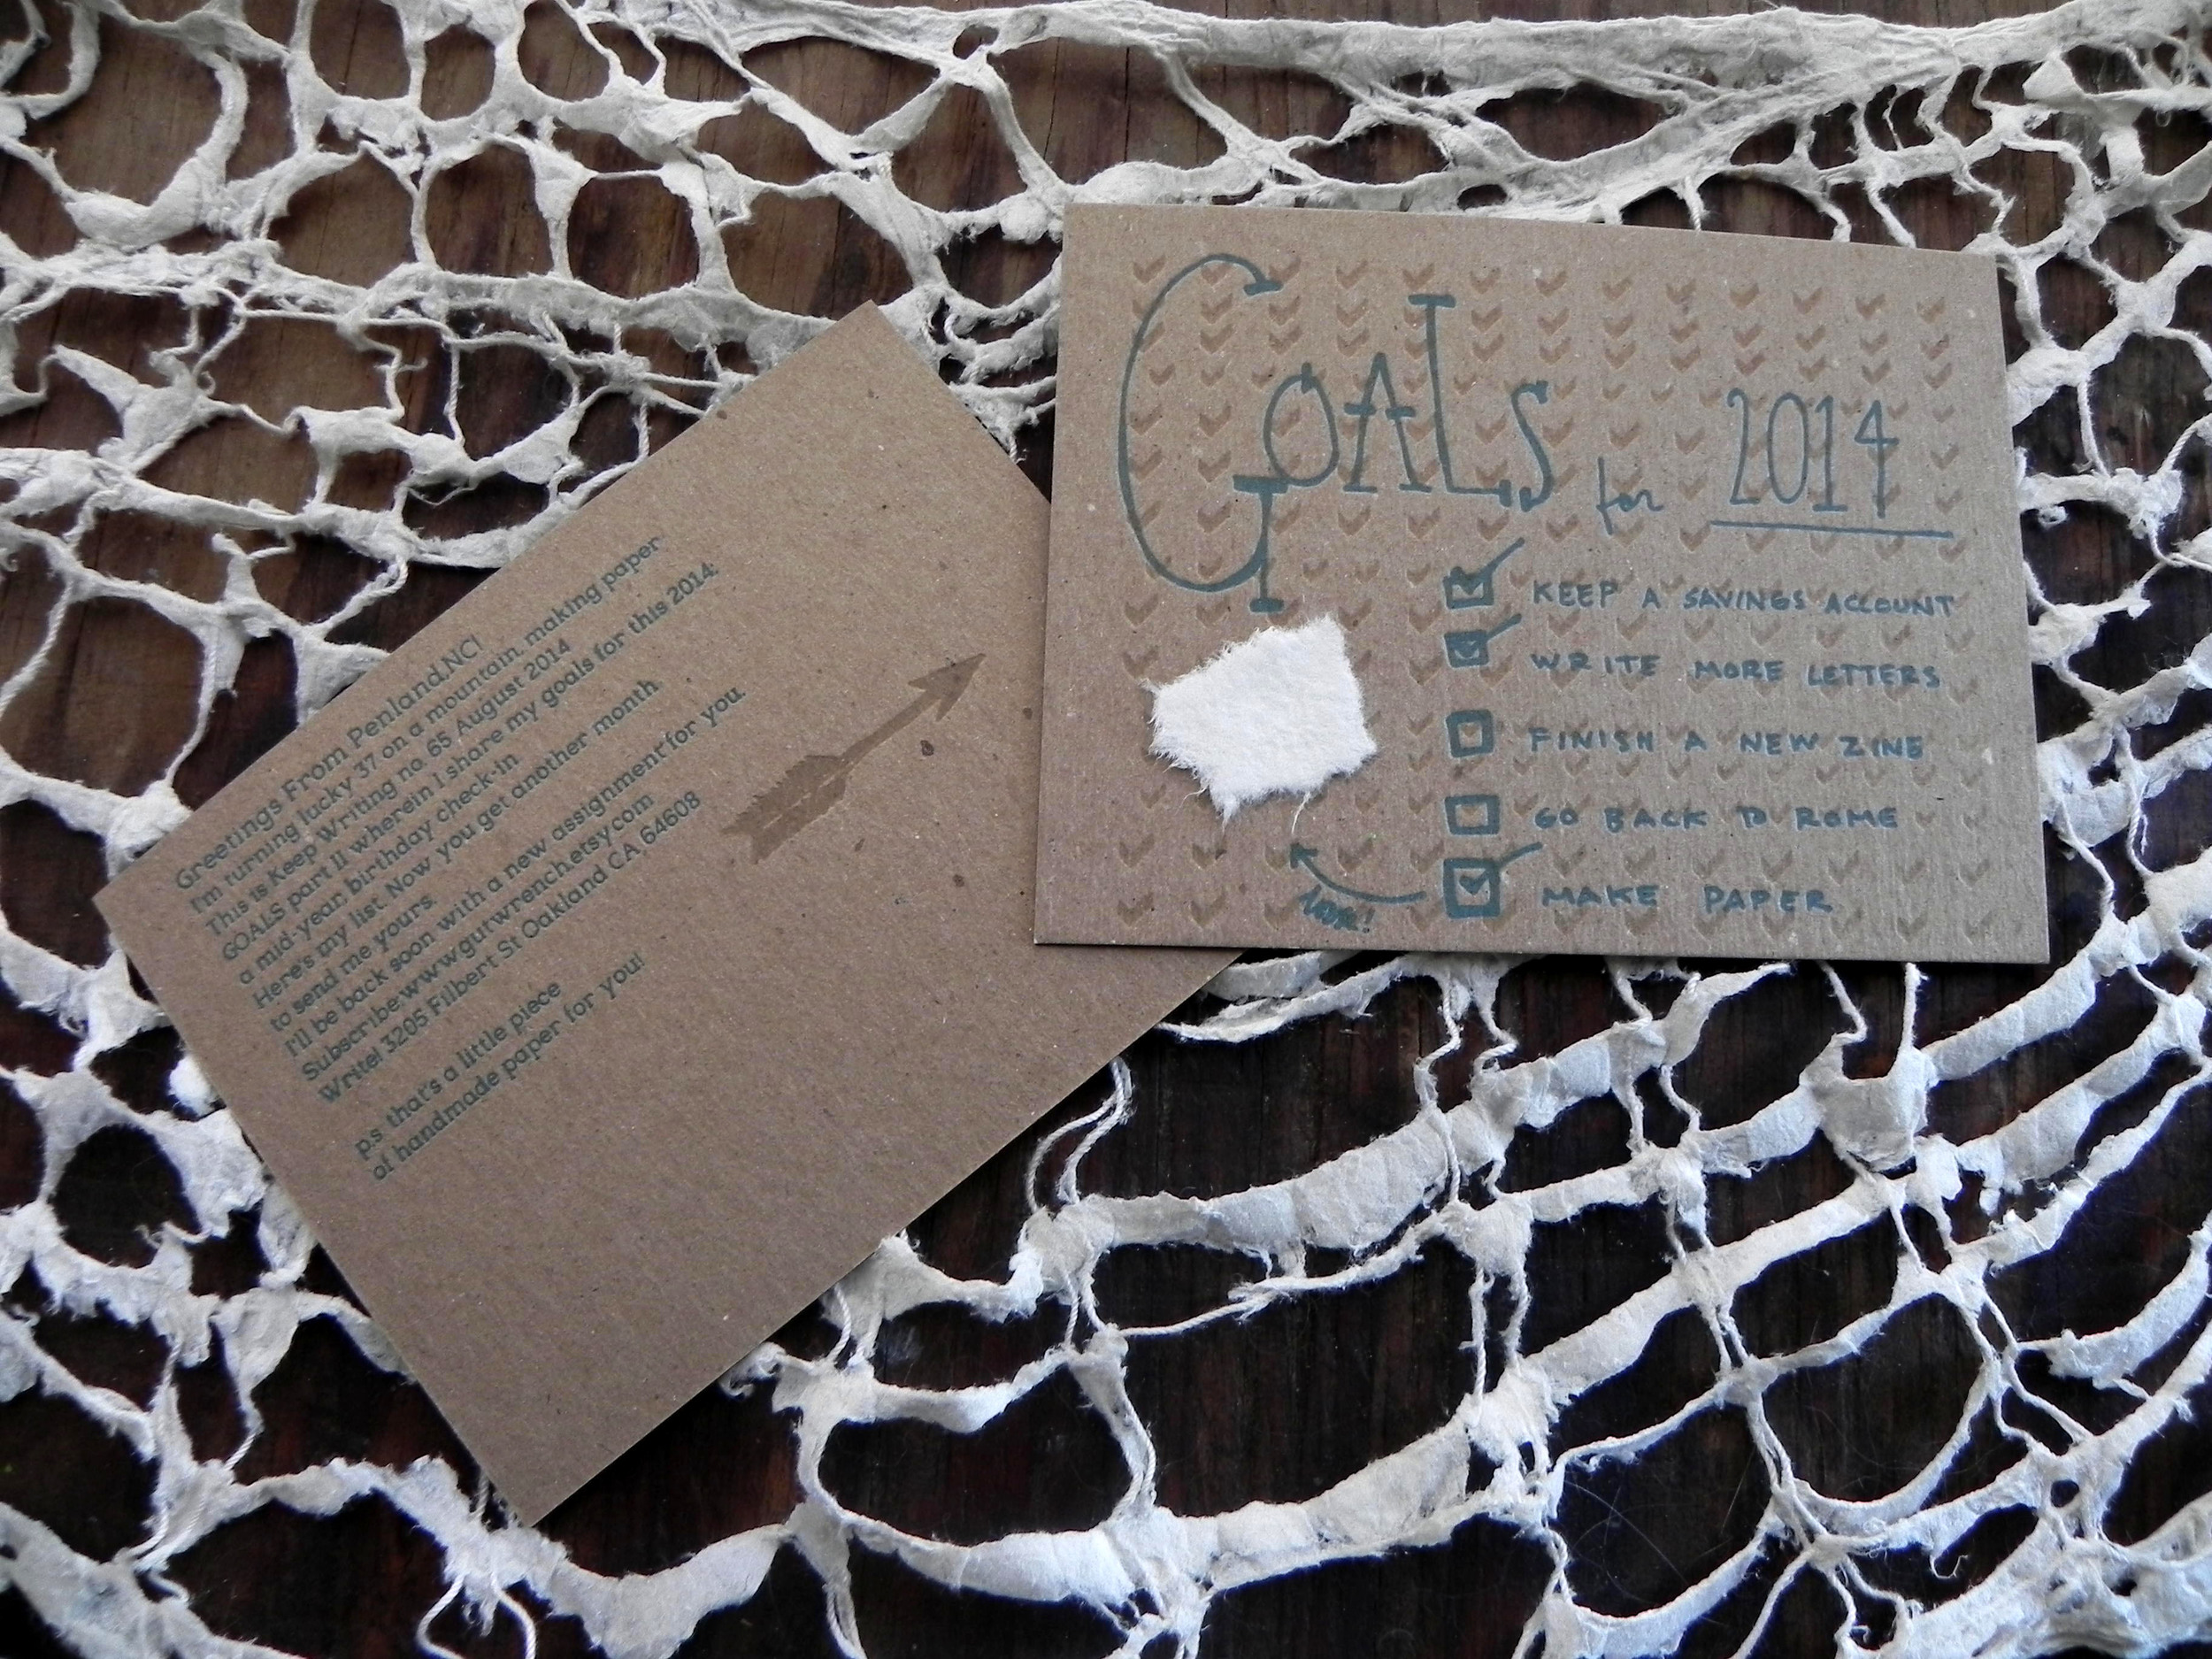 Keep Writing #65 August 2015, Goals part II. Letterpress printed on chipboard, including a scrap of handmade paper, sent from the school of Penland while taking a papermaking workshop. My goals for 2014 are listed.